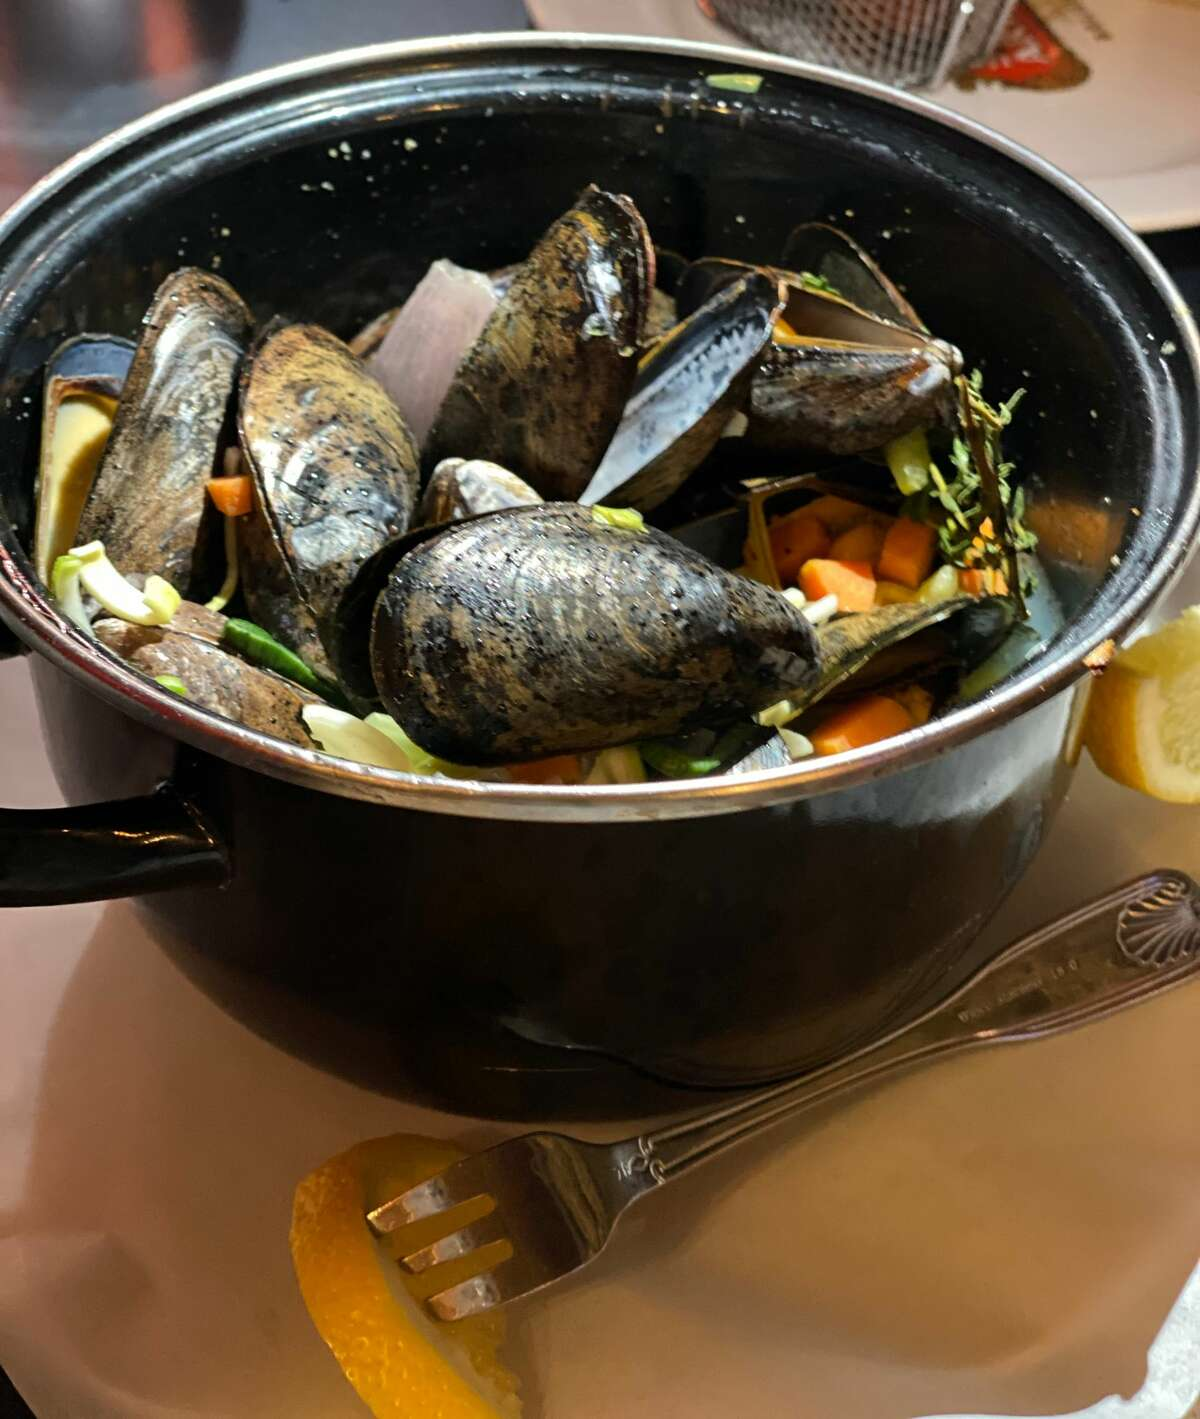 Mussels are served in their cooking pot with a light wine sauce at Brasserie Benelux in Saratoga Springs. (Susie Davidson Powell/For the Times Union)